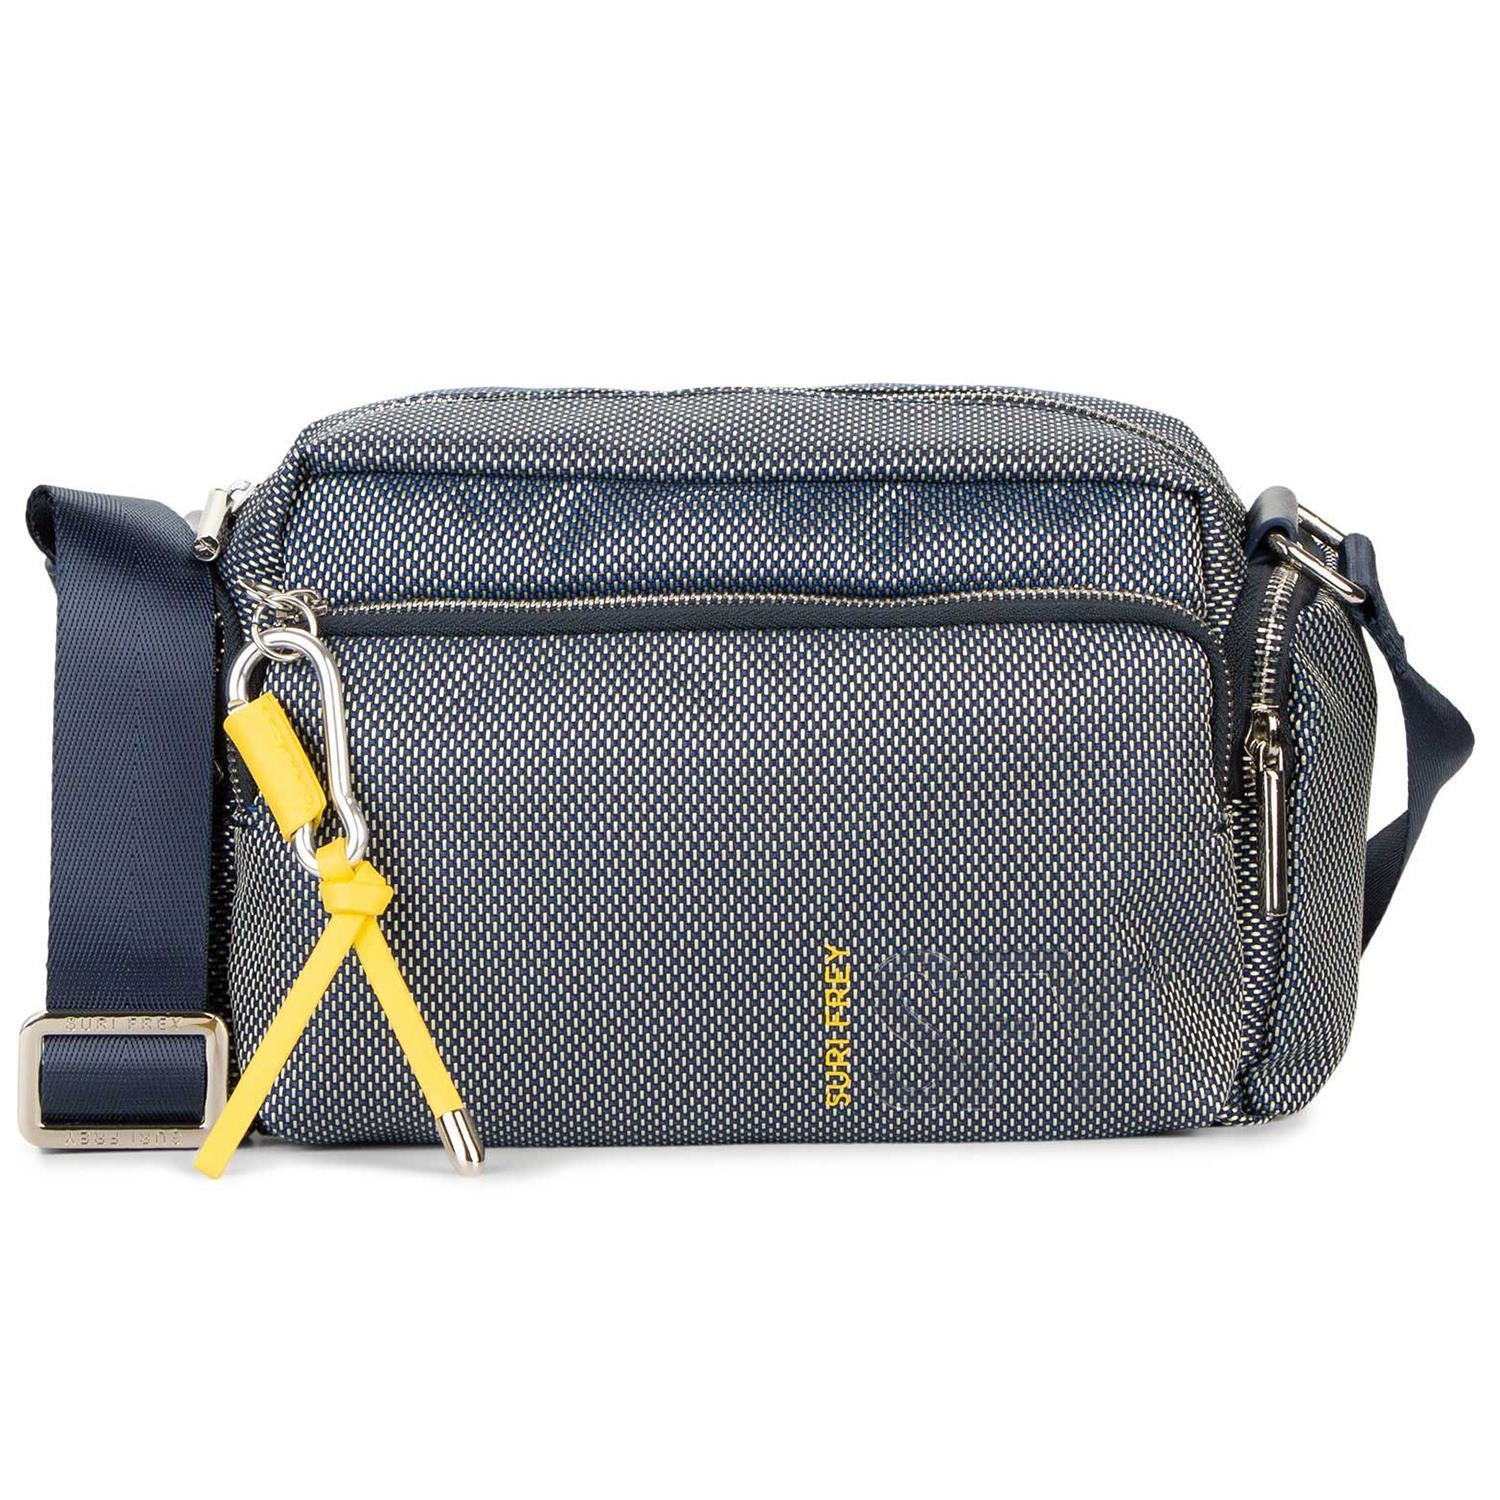 Suri Frey Sports Marry 18011 Handtasche Blau